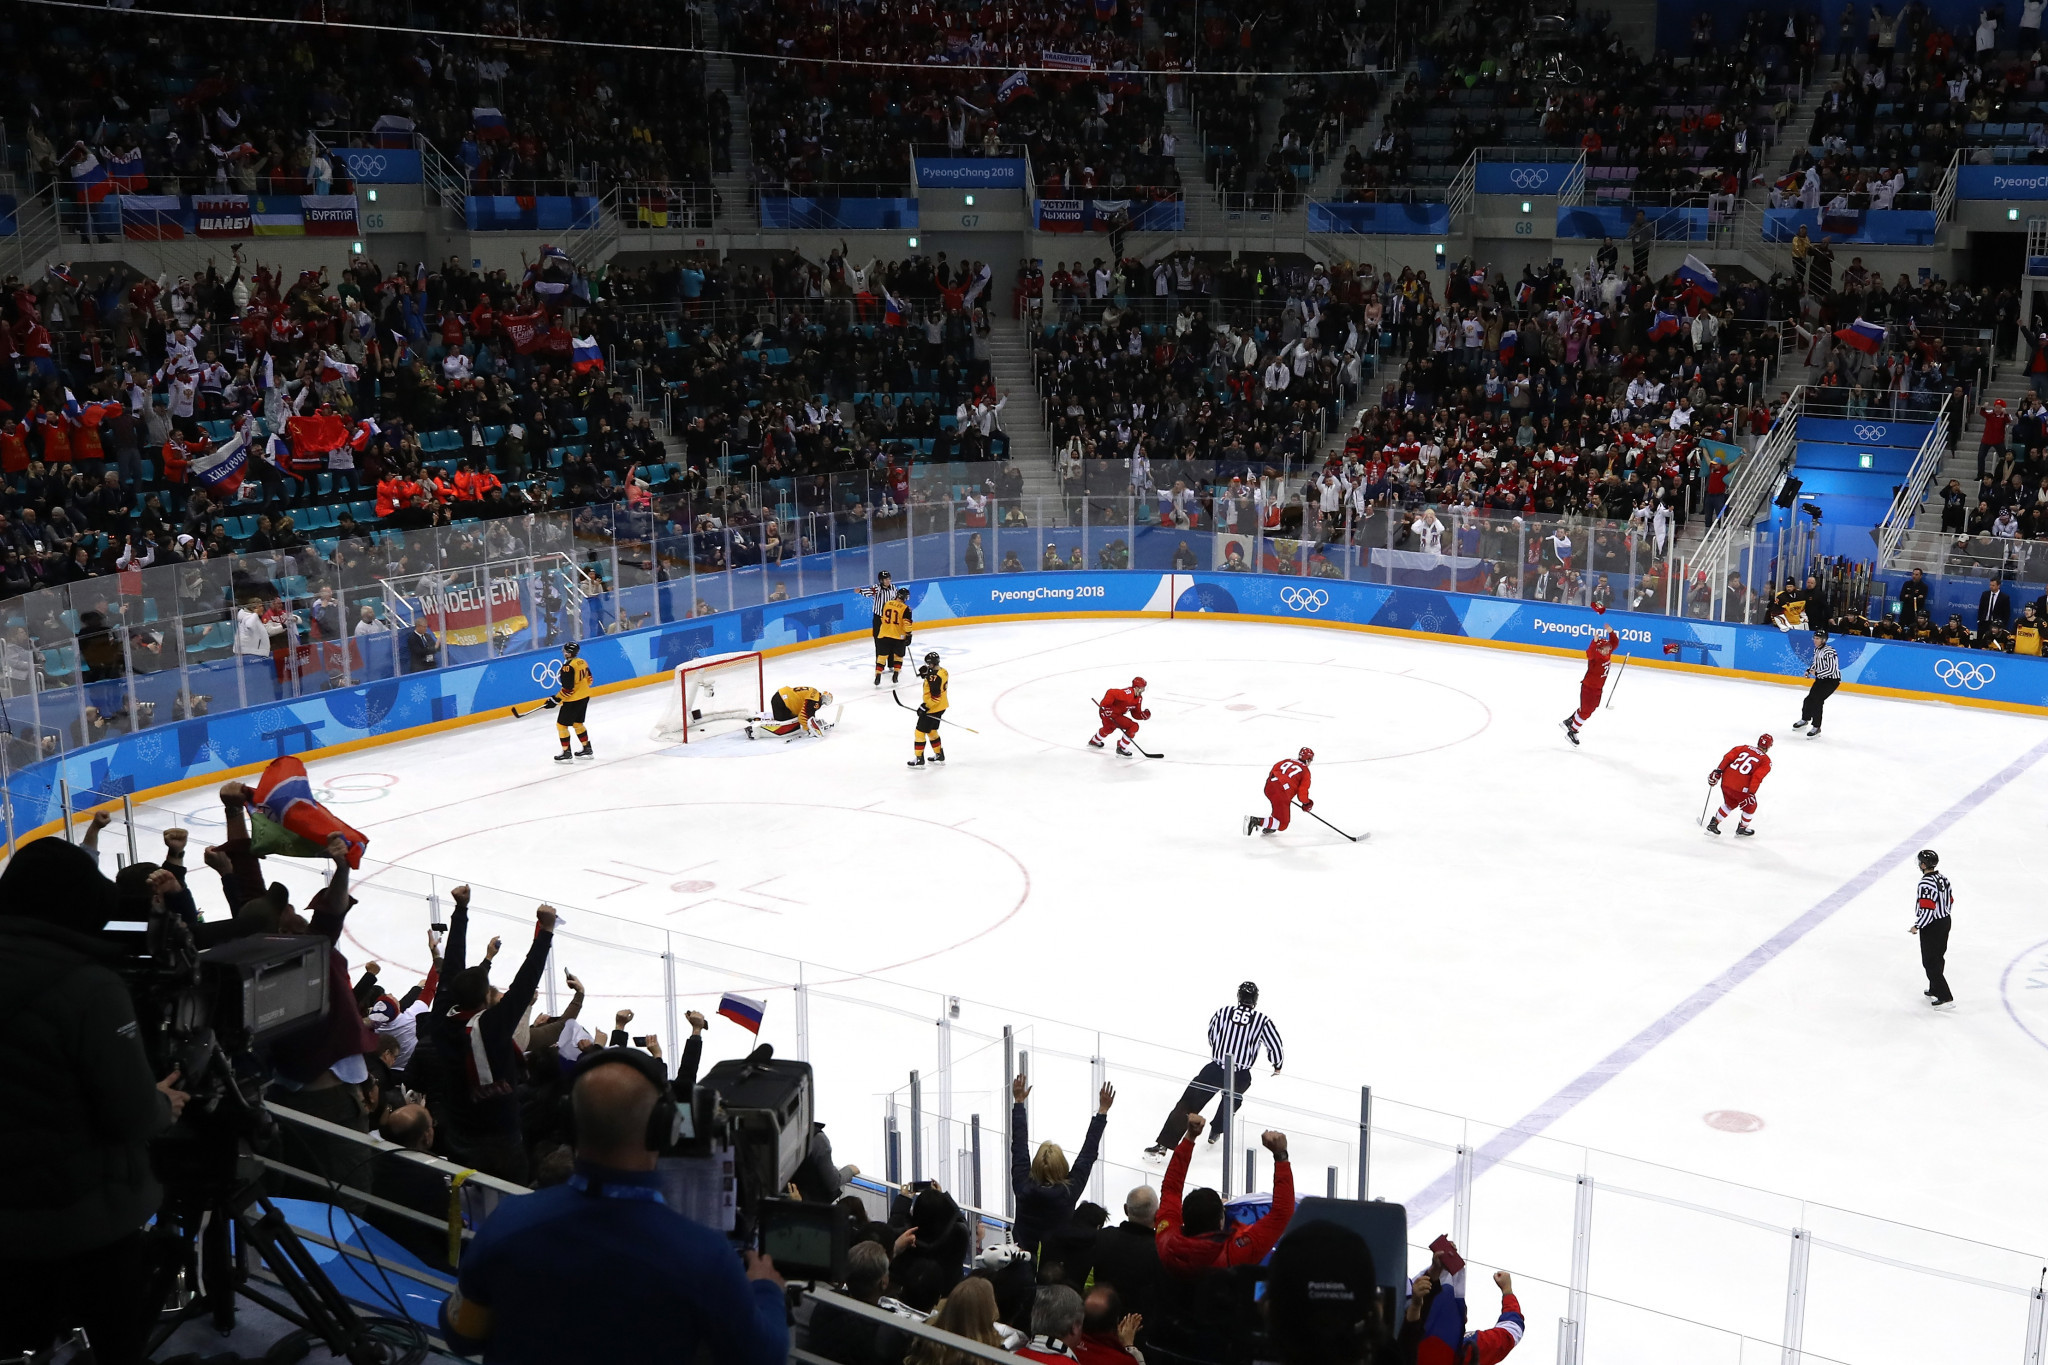 Ice hockey currently features at the Winter Olympic Games with a men's and women's tournament, but Henrik Bach Nielsen is hoping to introduce more disciplines to the programme ©Getty Images